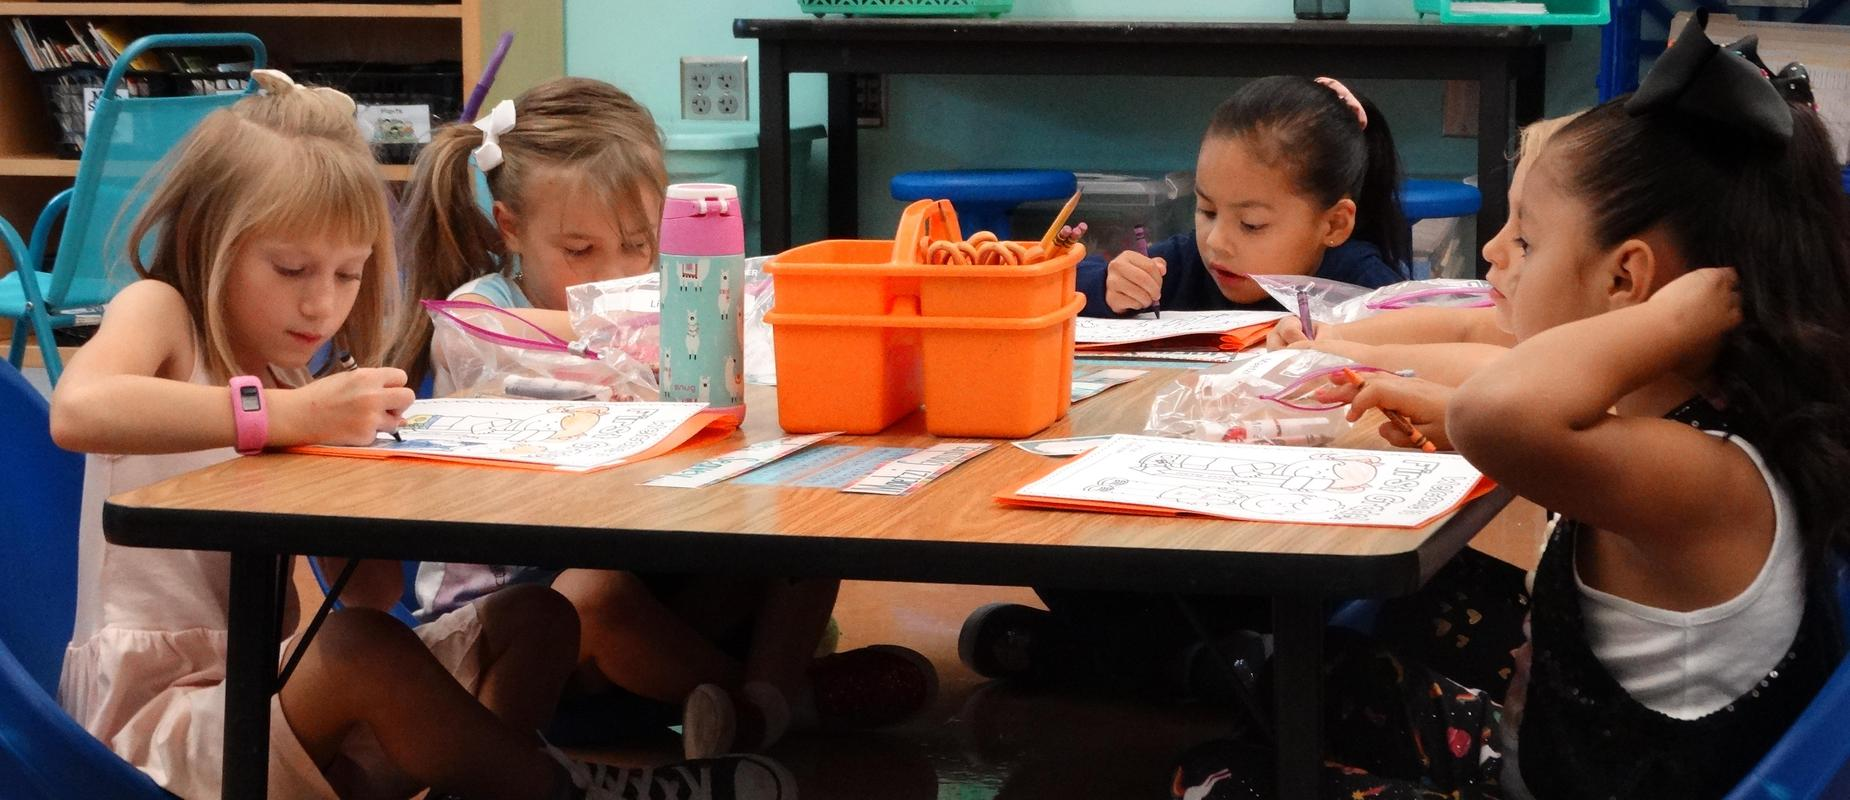 Five female students working on coloring pages at their table while seated on the ground